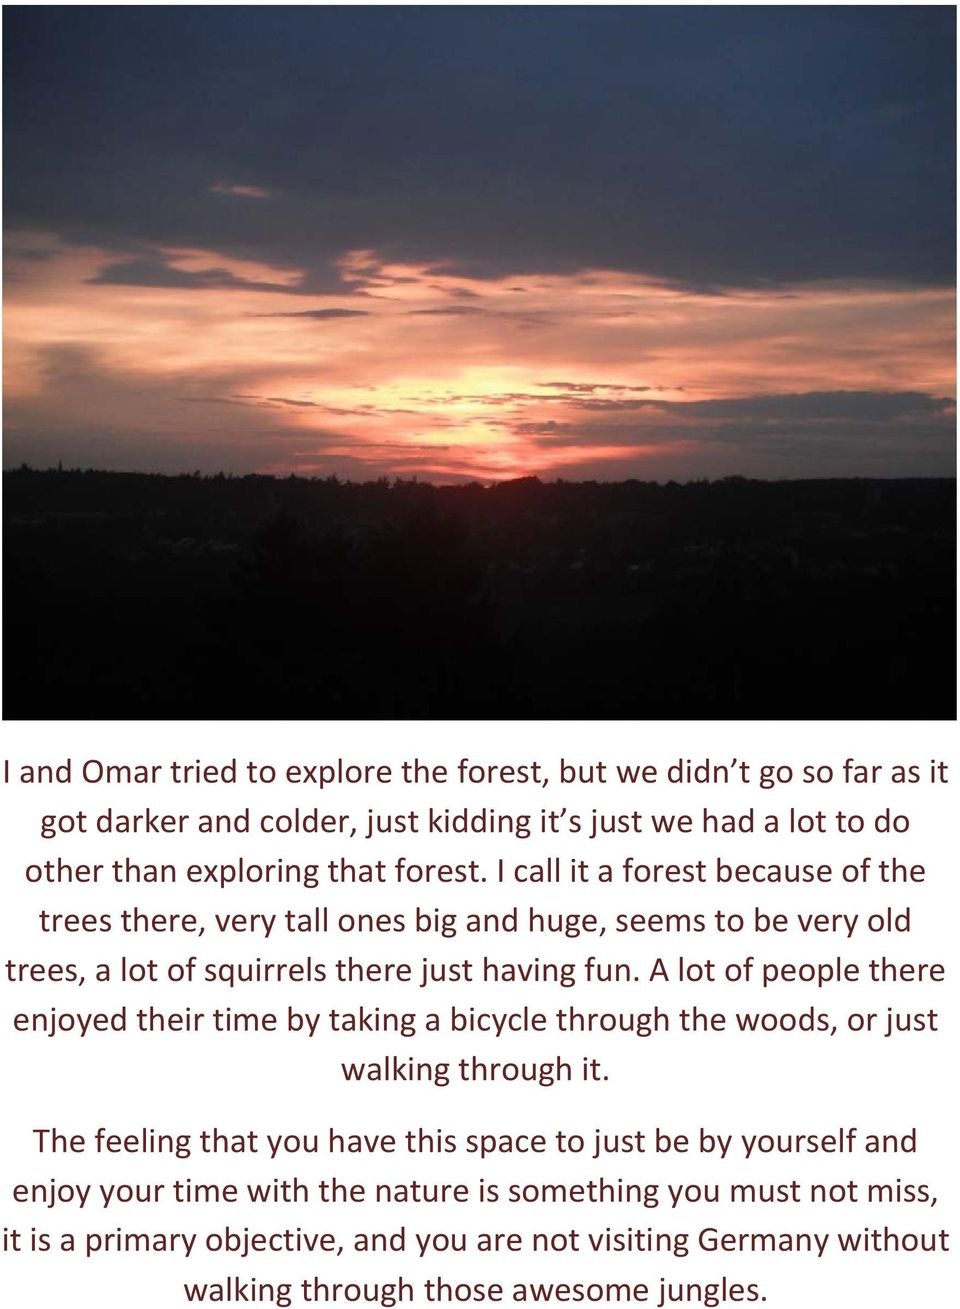 A lot of people there enjoyed their time by taking a bicycle through the woods, or just walking through it.